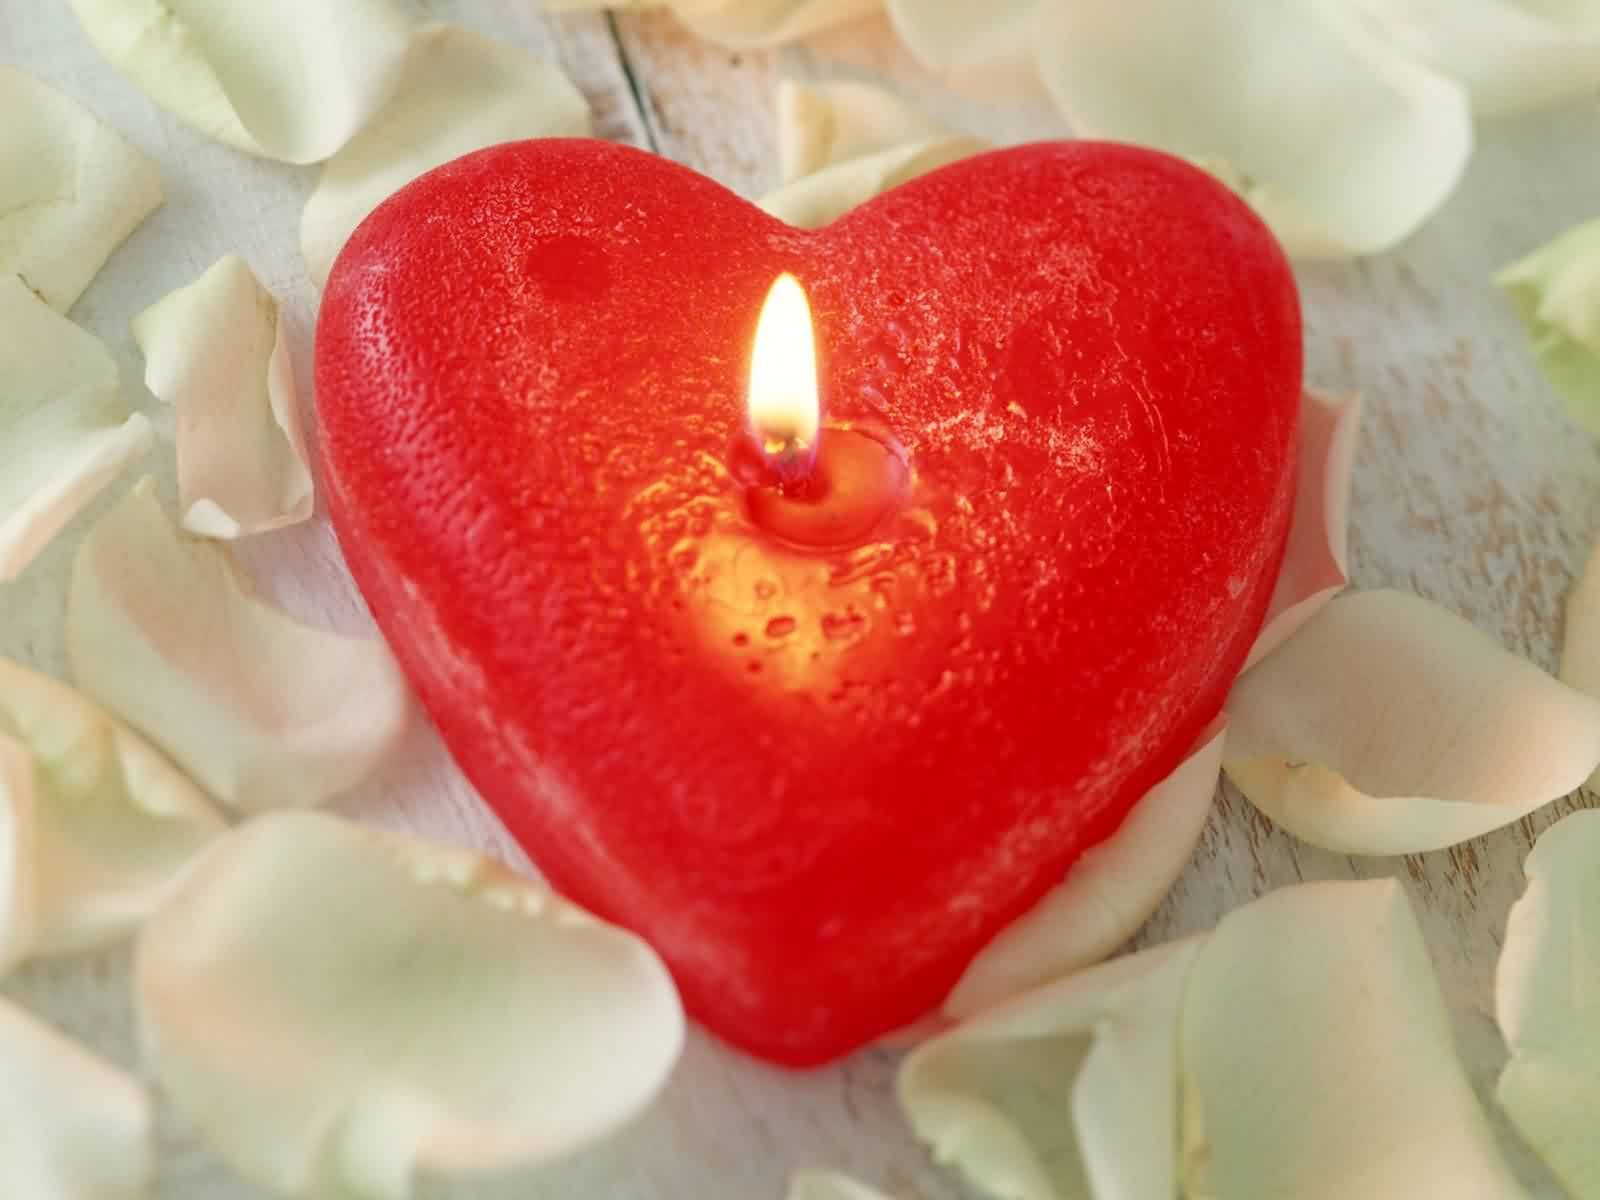 Good Wallpaper High Quality Love - Candle+on+heart+HD+wallpaper  Perfect Image Reference_711320.JPG